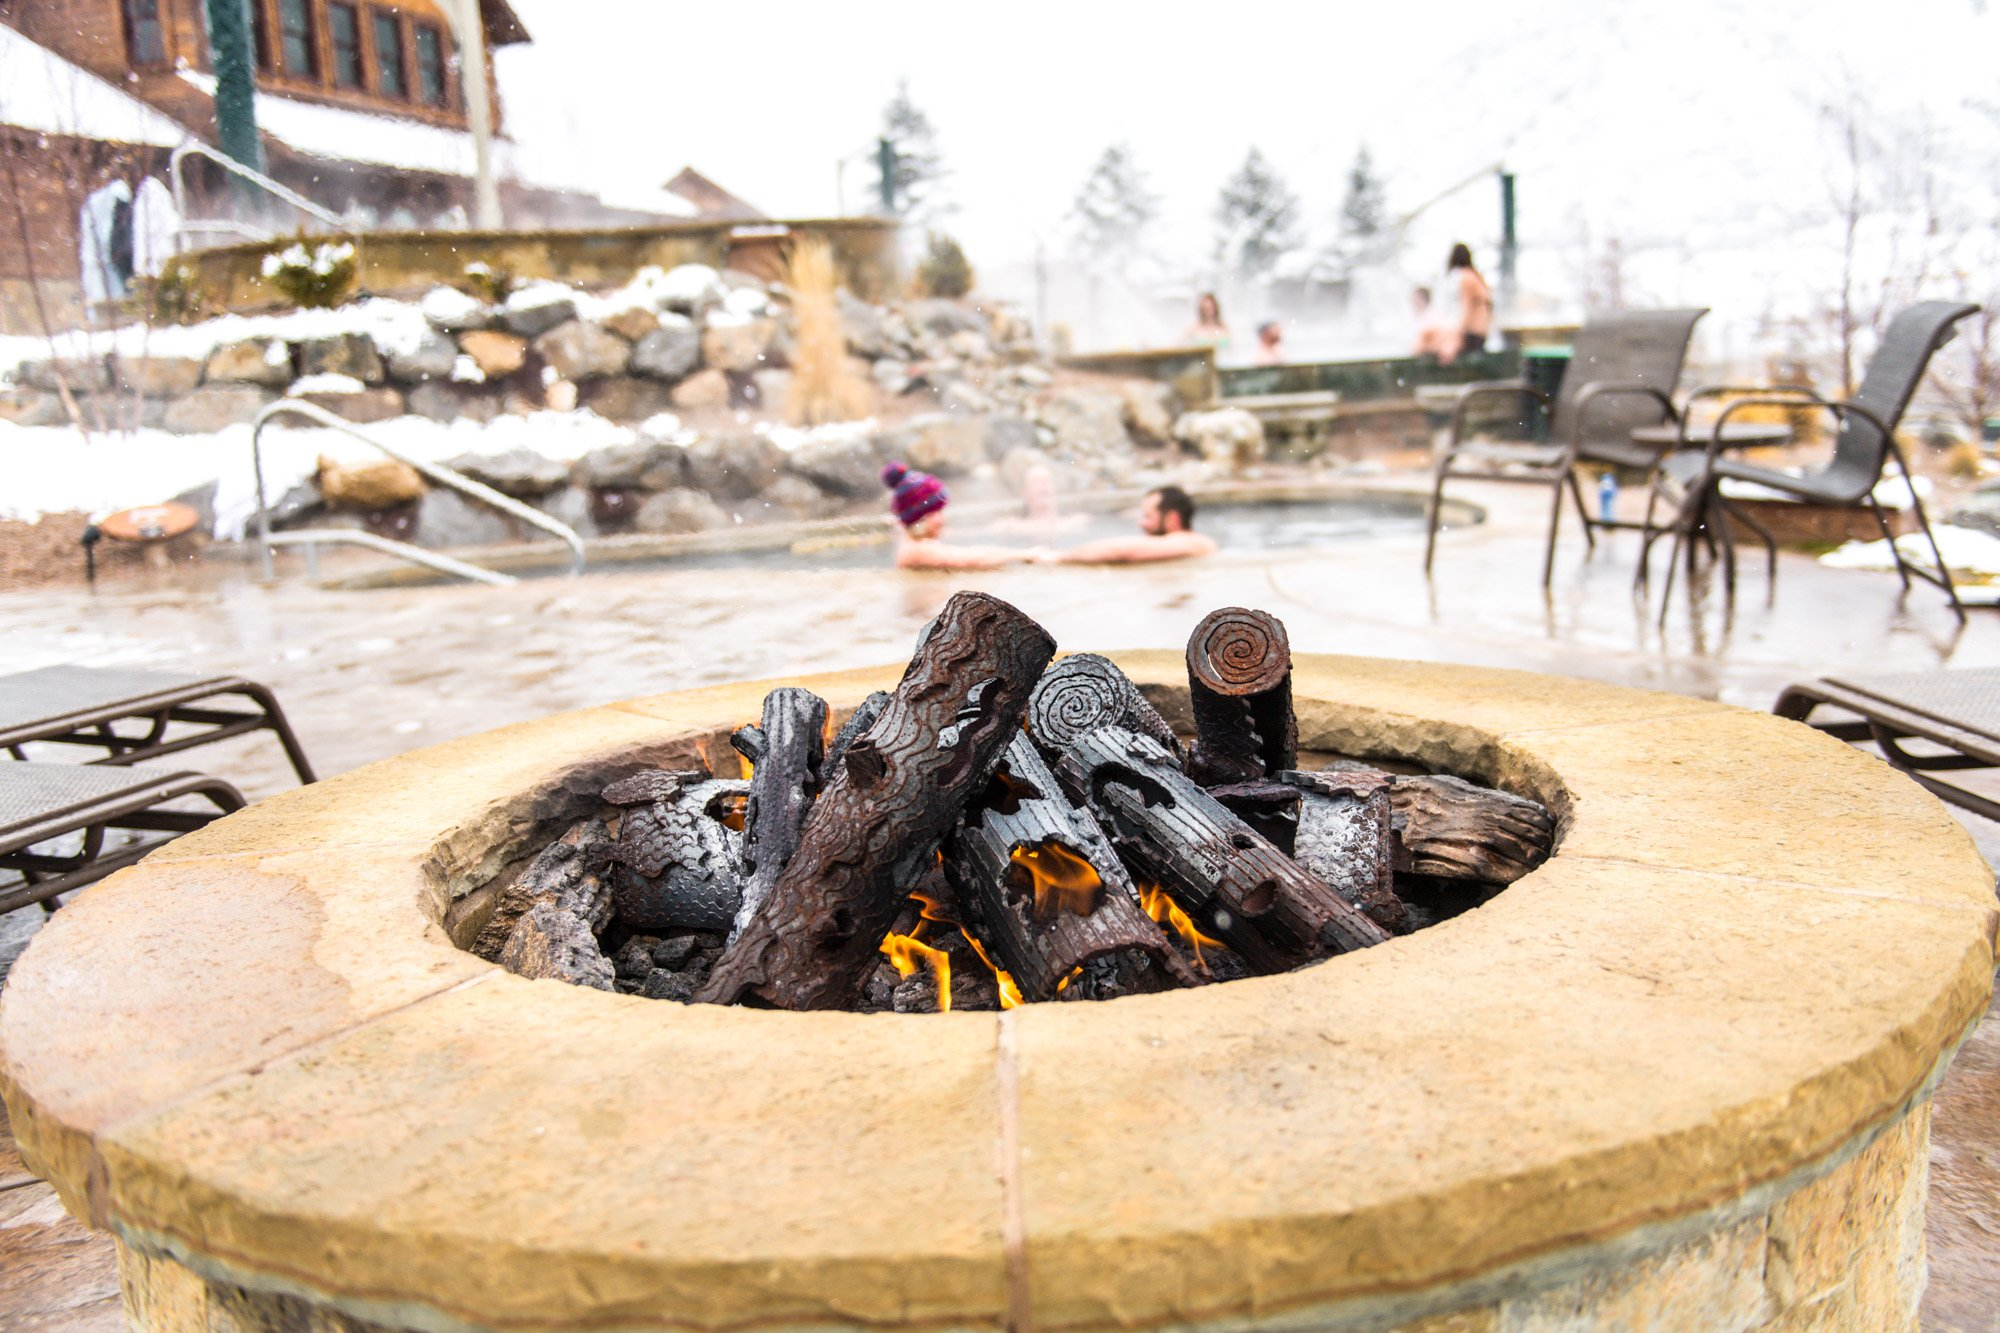 Happy Hygge! Enjoy the Nordic cozy tradition at Iron Mountain Hot Springs